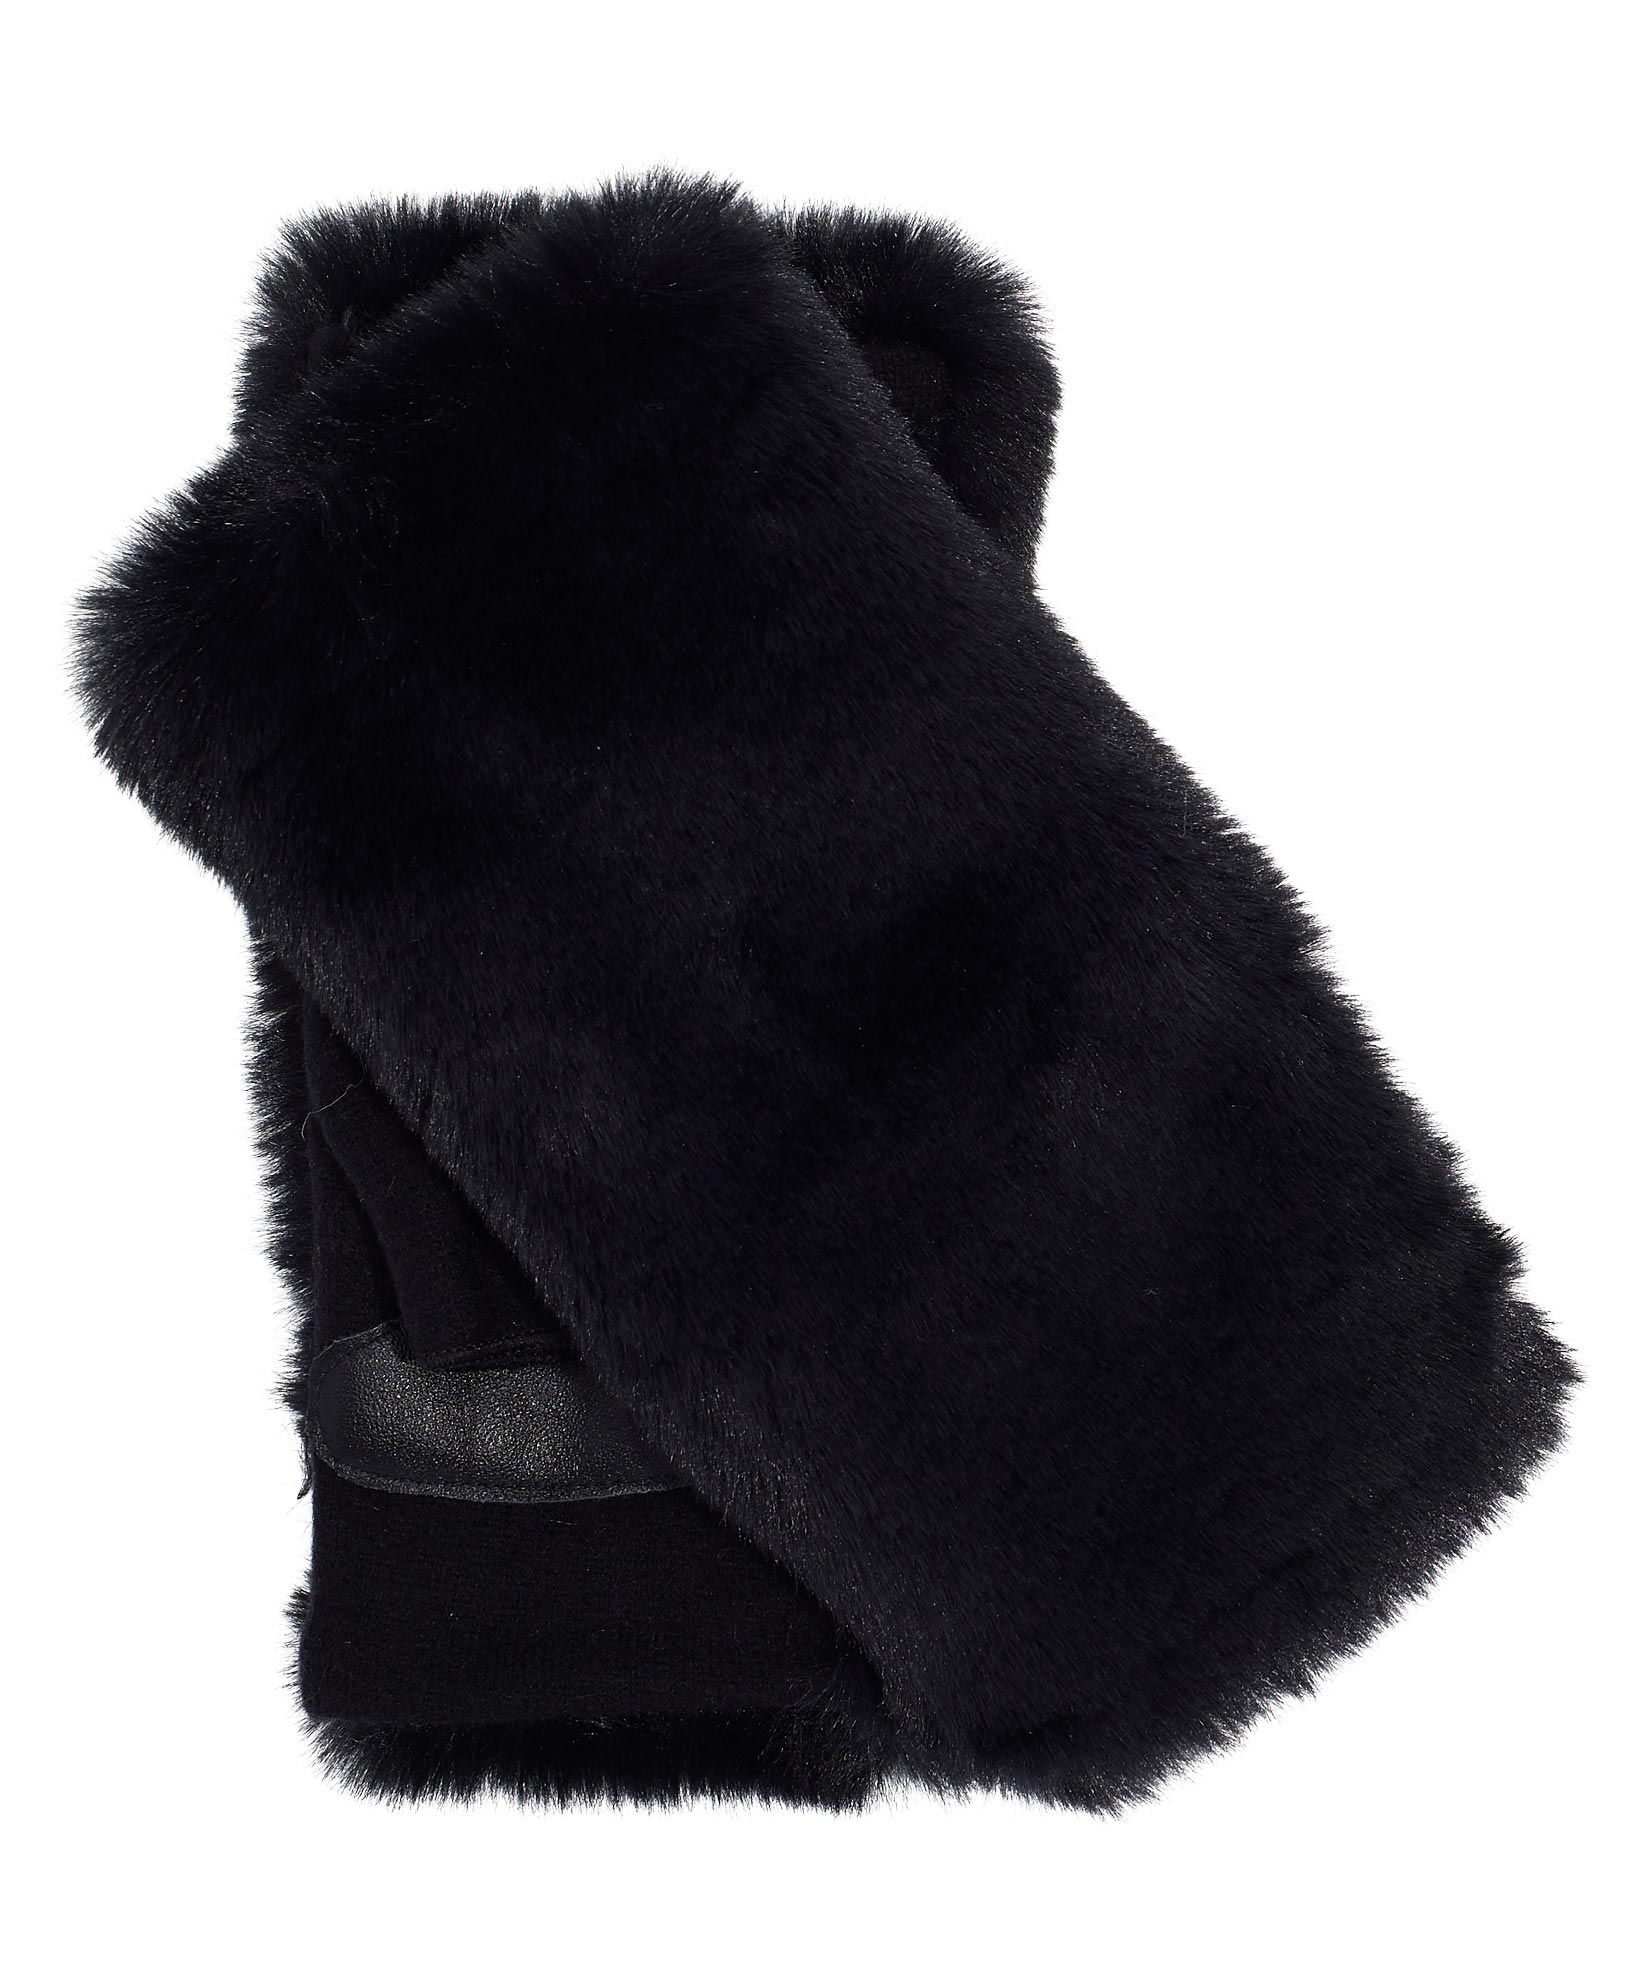 Black/Black - Faux Fur Fingerless Glove